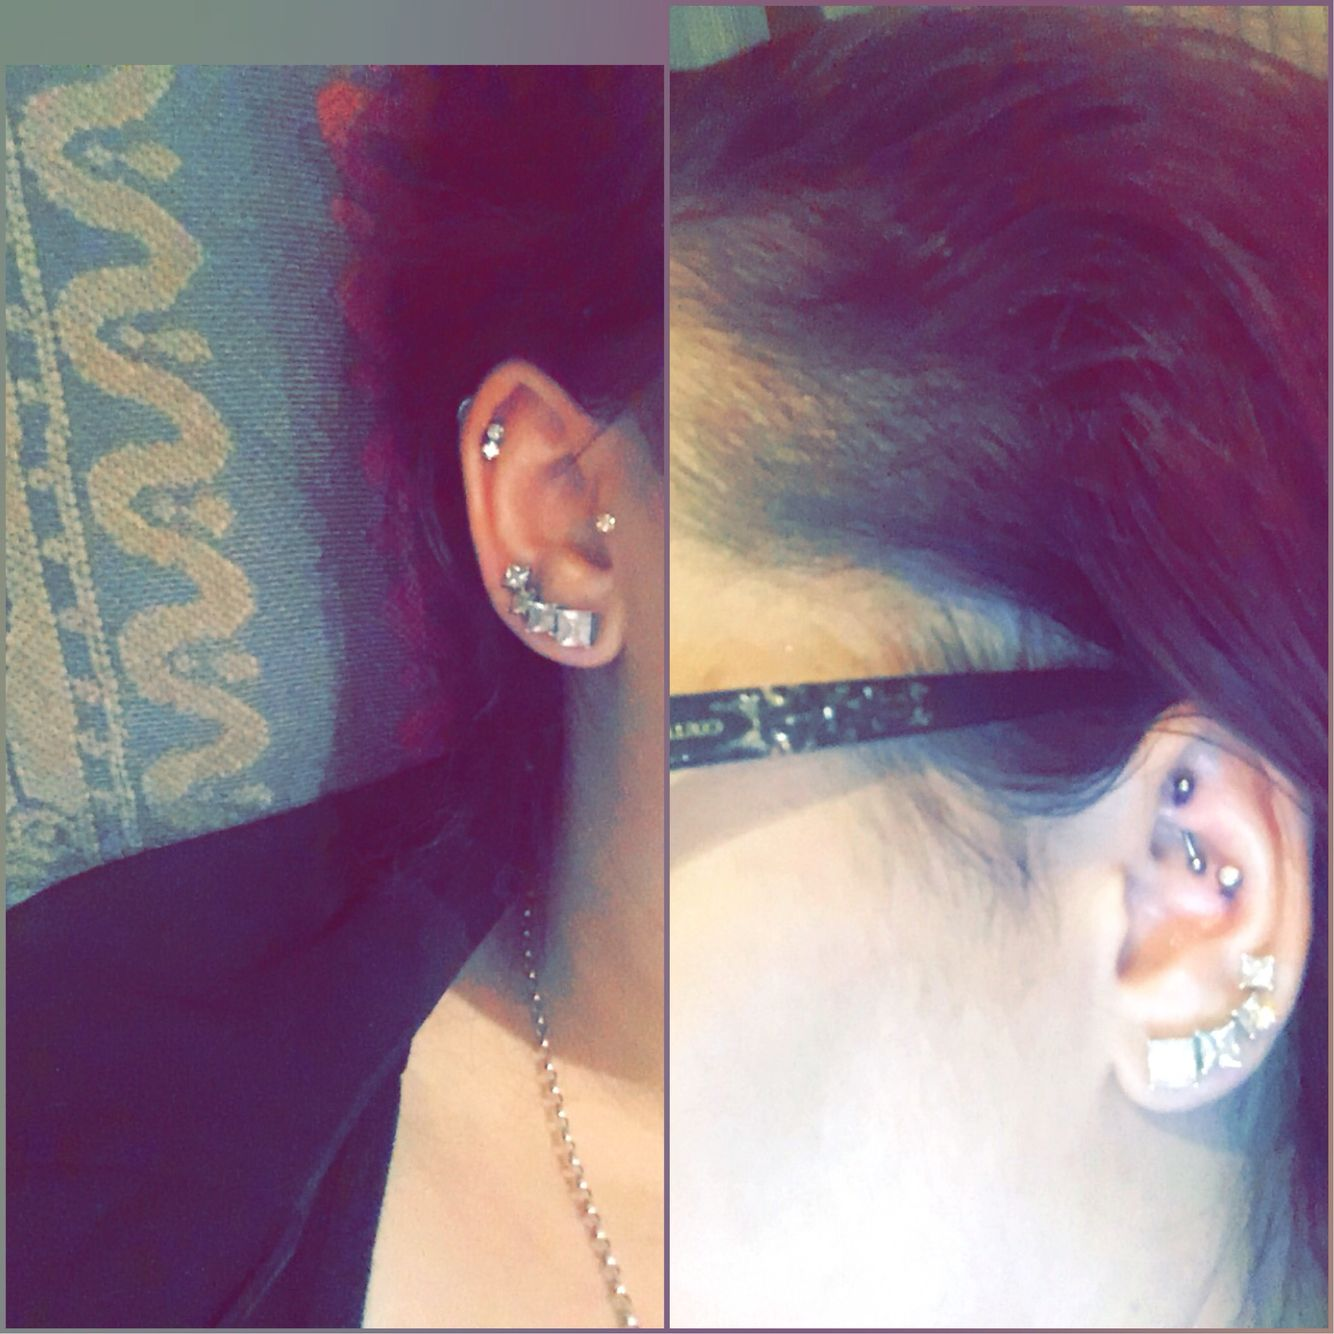 how to change a rook piercing